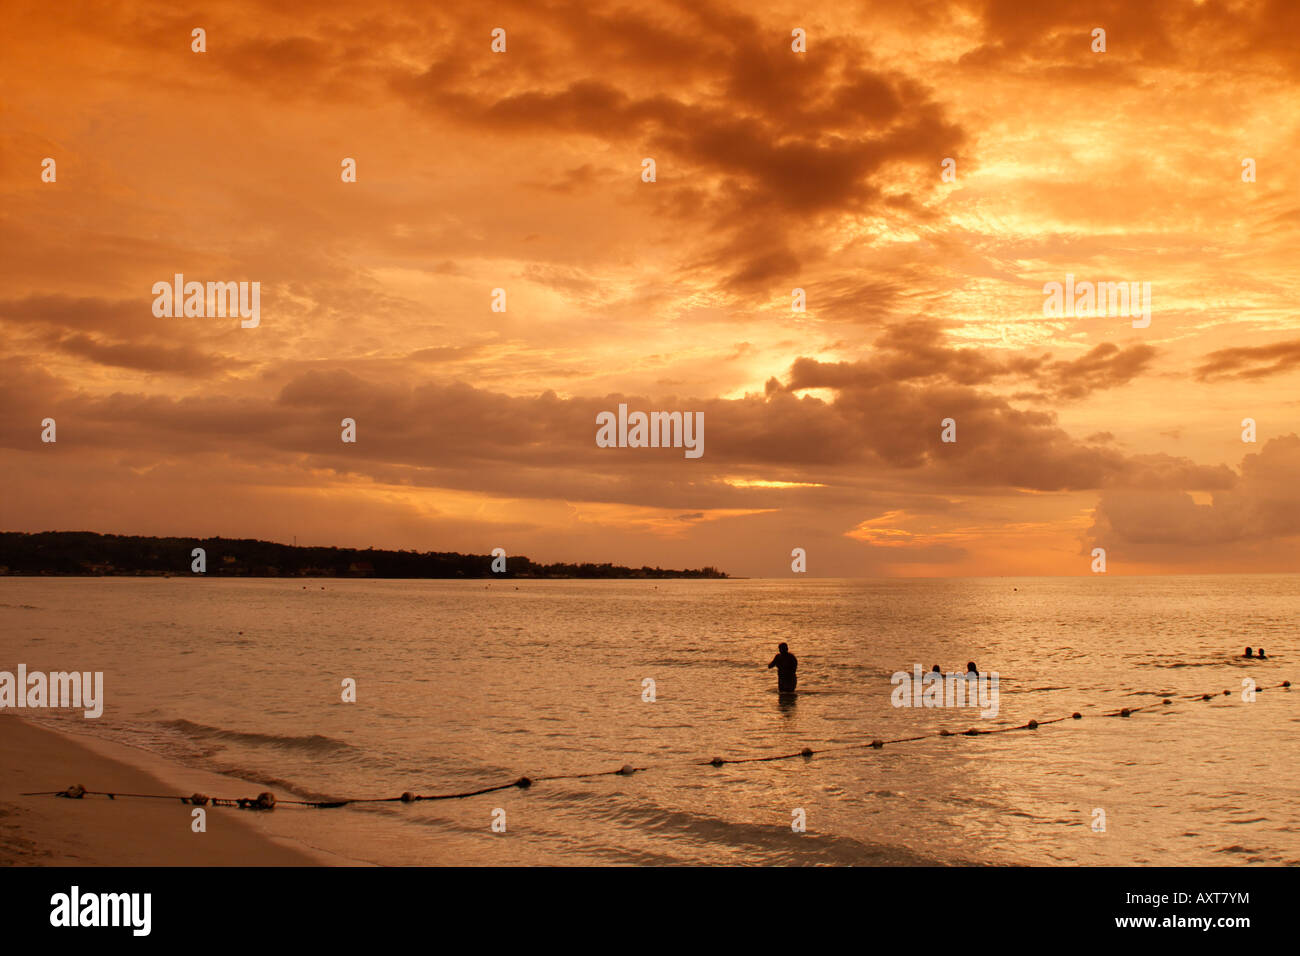 Jamaica Negril beach sunset - Stock Image